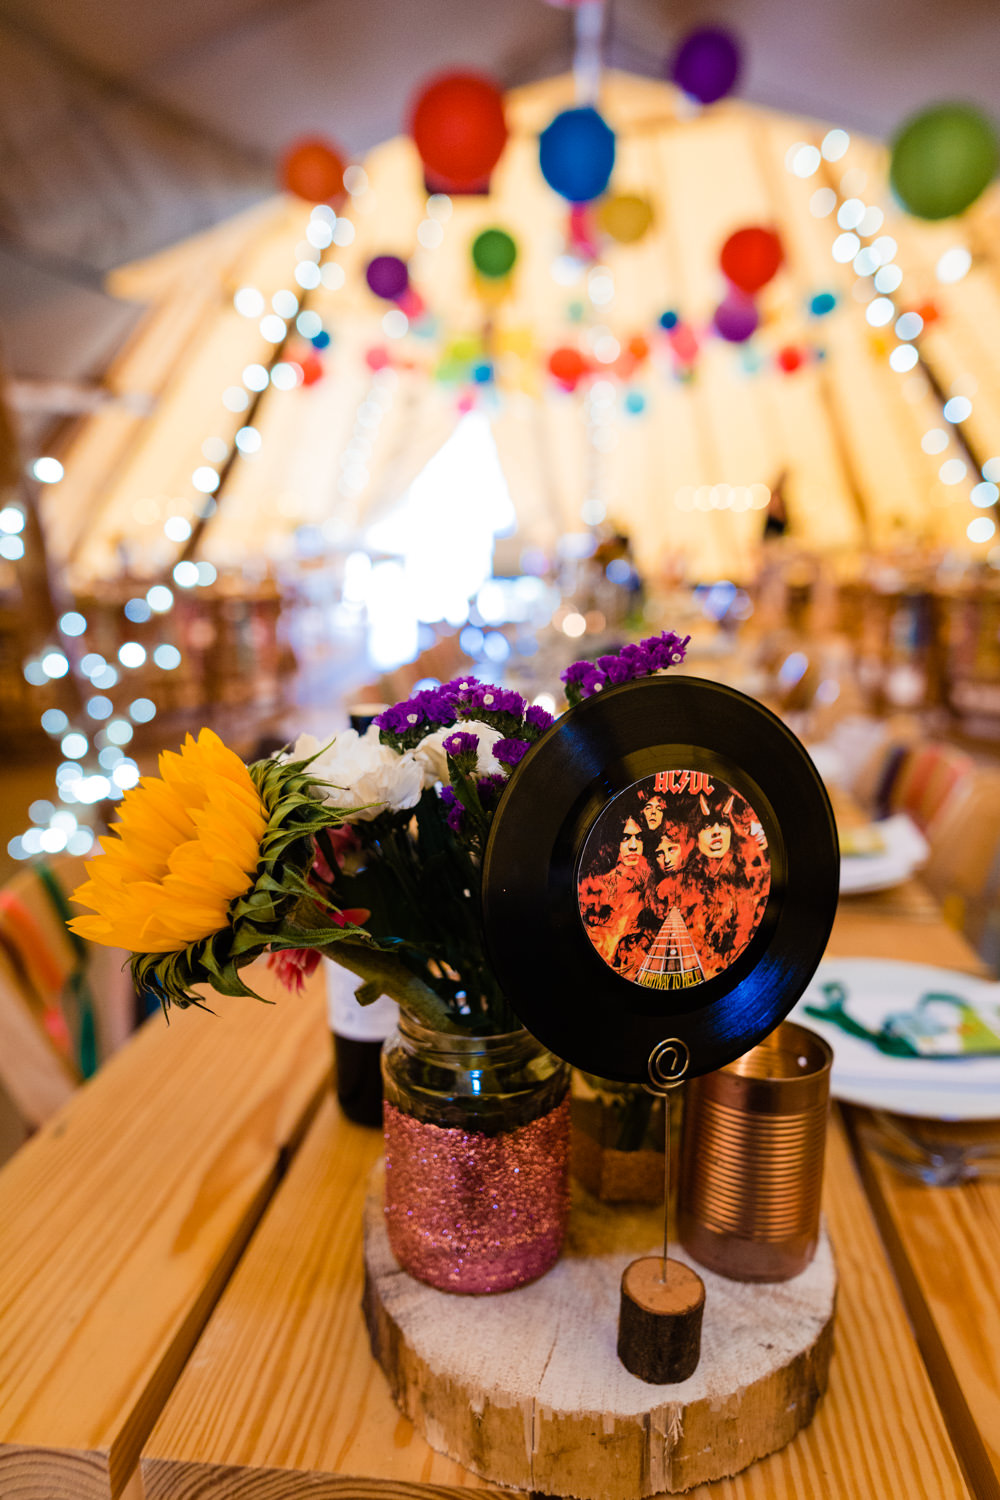 Centrepiece Decor Log Table Tine Jar Flowers Vinyl Table Name Number Colourful Festival Party Wedding Emma and Rich Photography